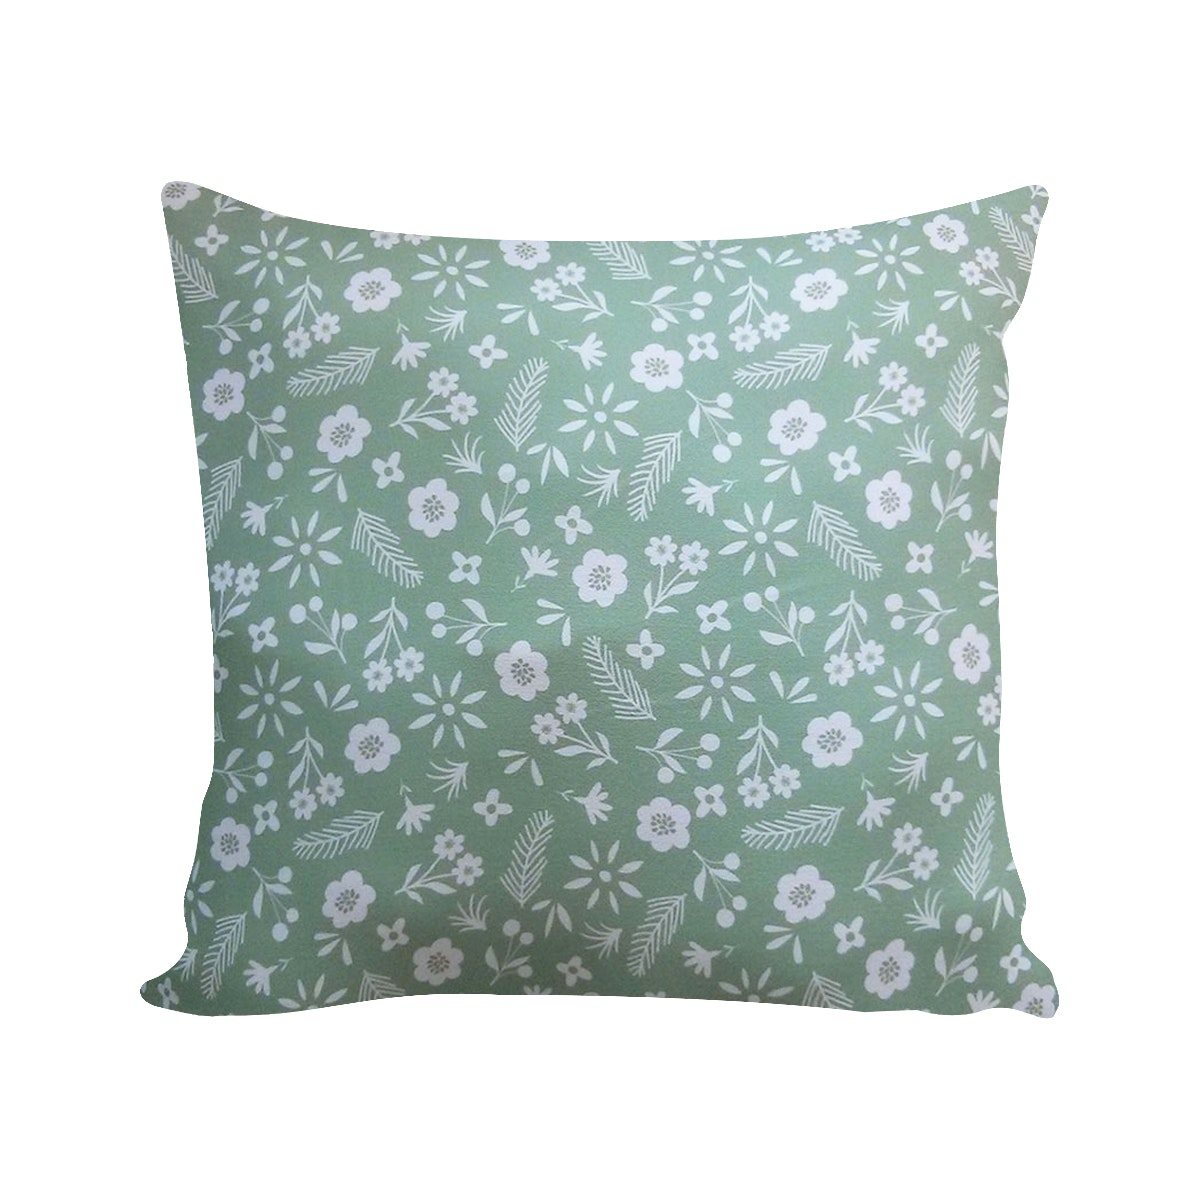 KAWUNG LIVING Grass & Bud Cushion 45x45cm (Insert+Cover)